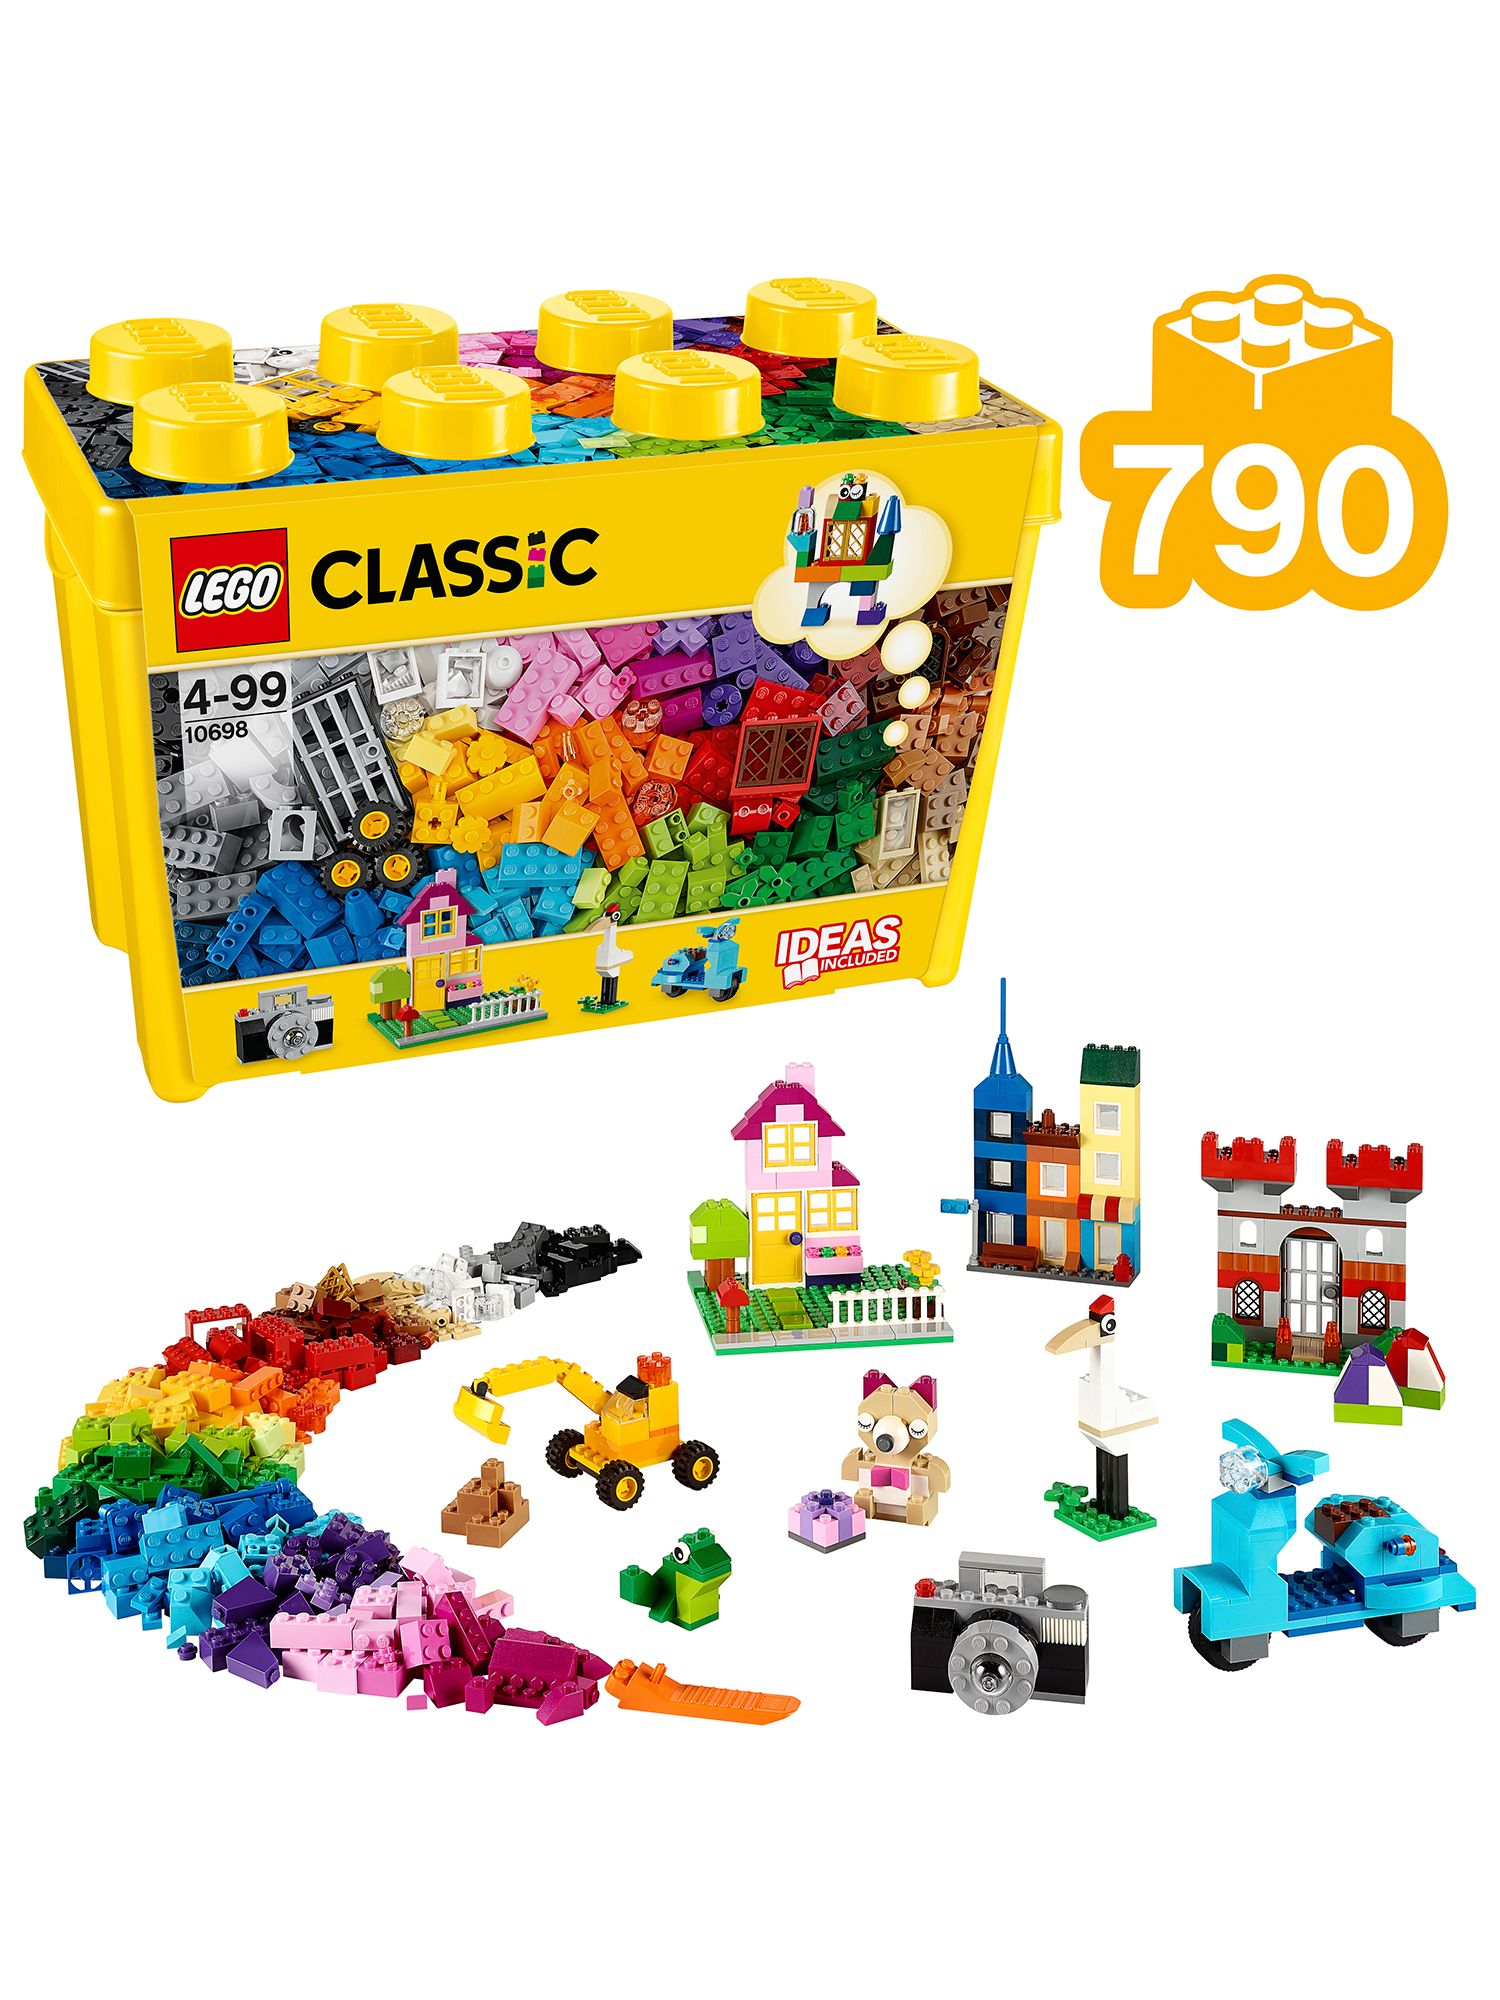 Buy LEGO Classic 10698 Large Creative Brick Box Online at johnlewis.com